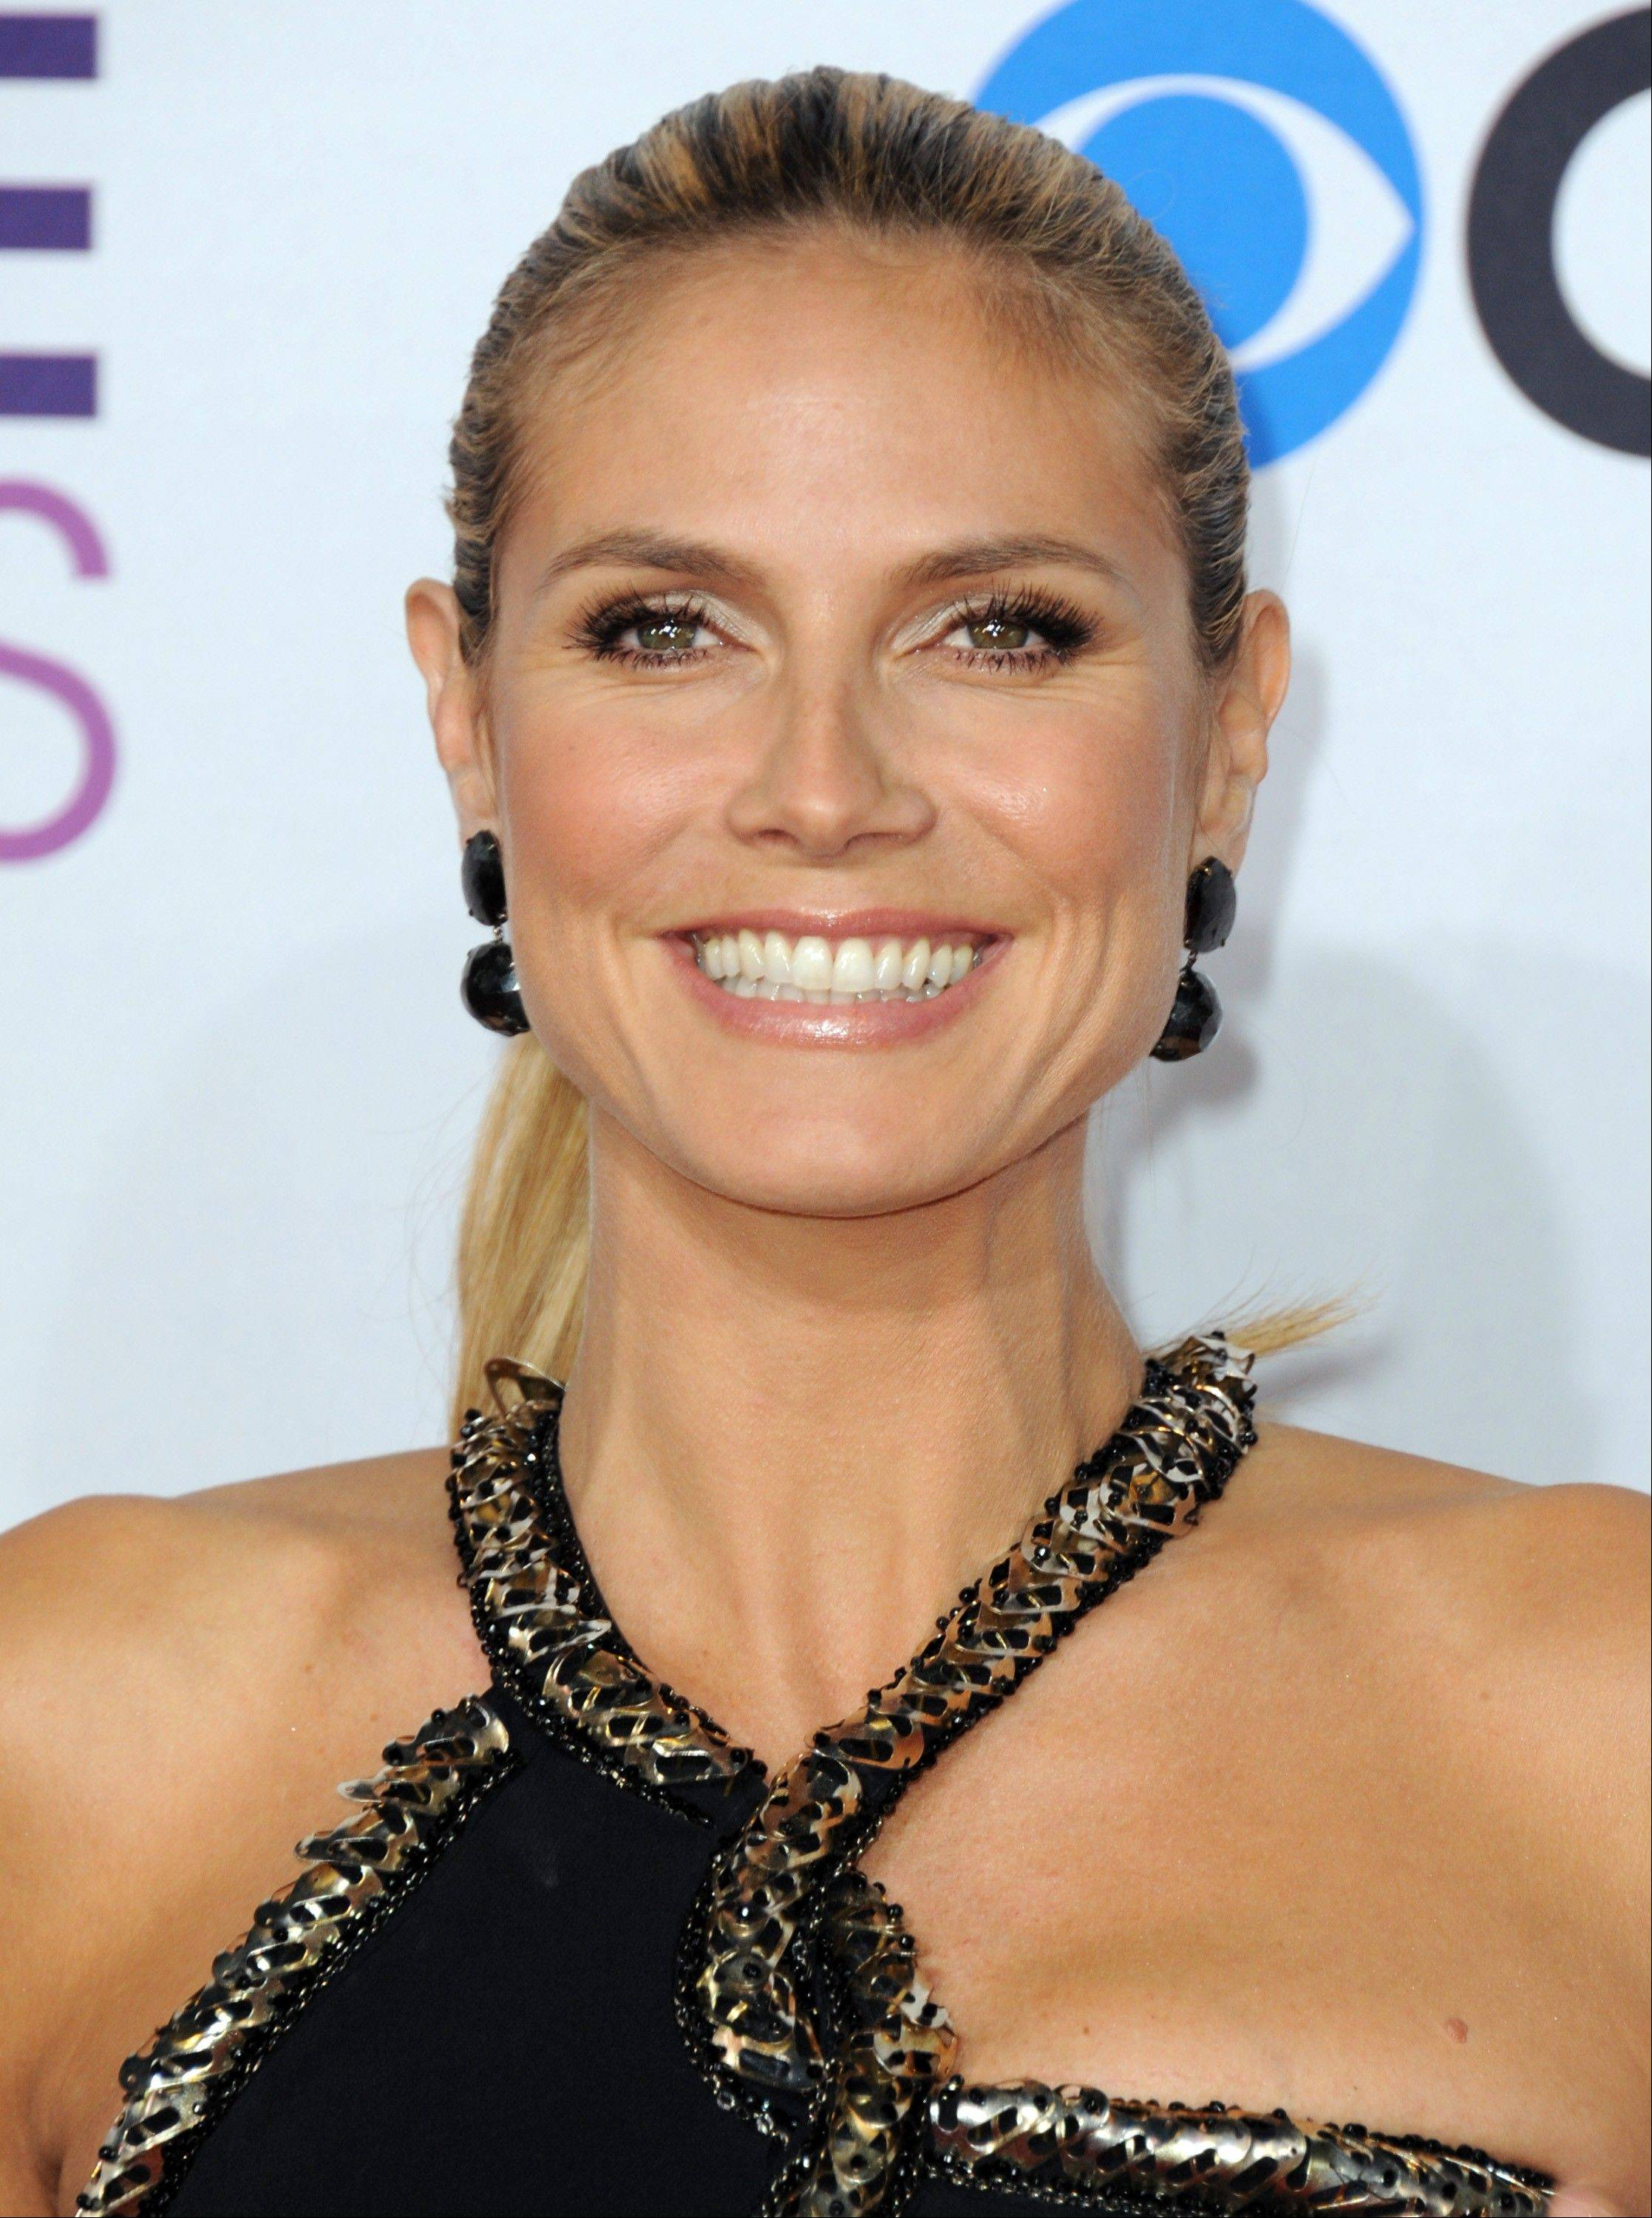 Heidi Klum arrives at the People's Choice Awards at the Nokia Theatre on Wednesday Jan. 9, 2013, in Los Angeles.